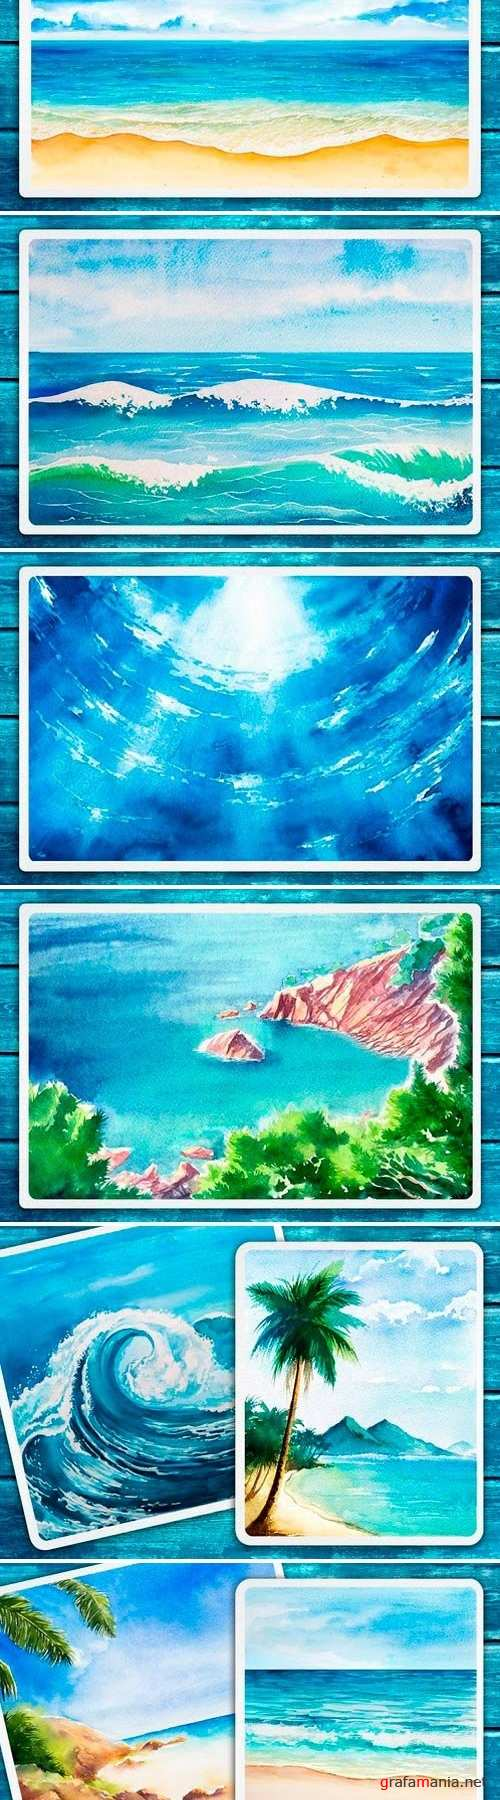 Seascapes. Watercolor illustrations - 1432806